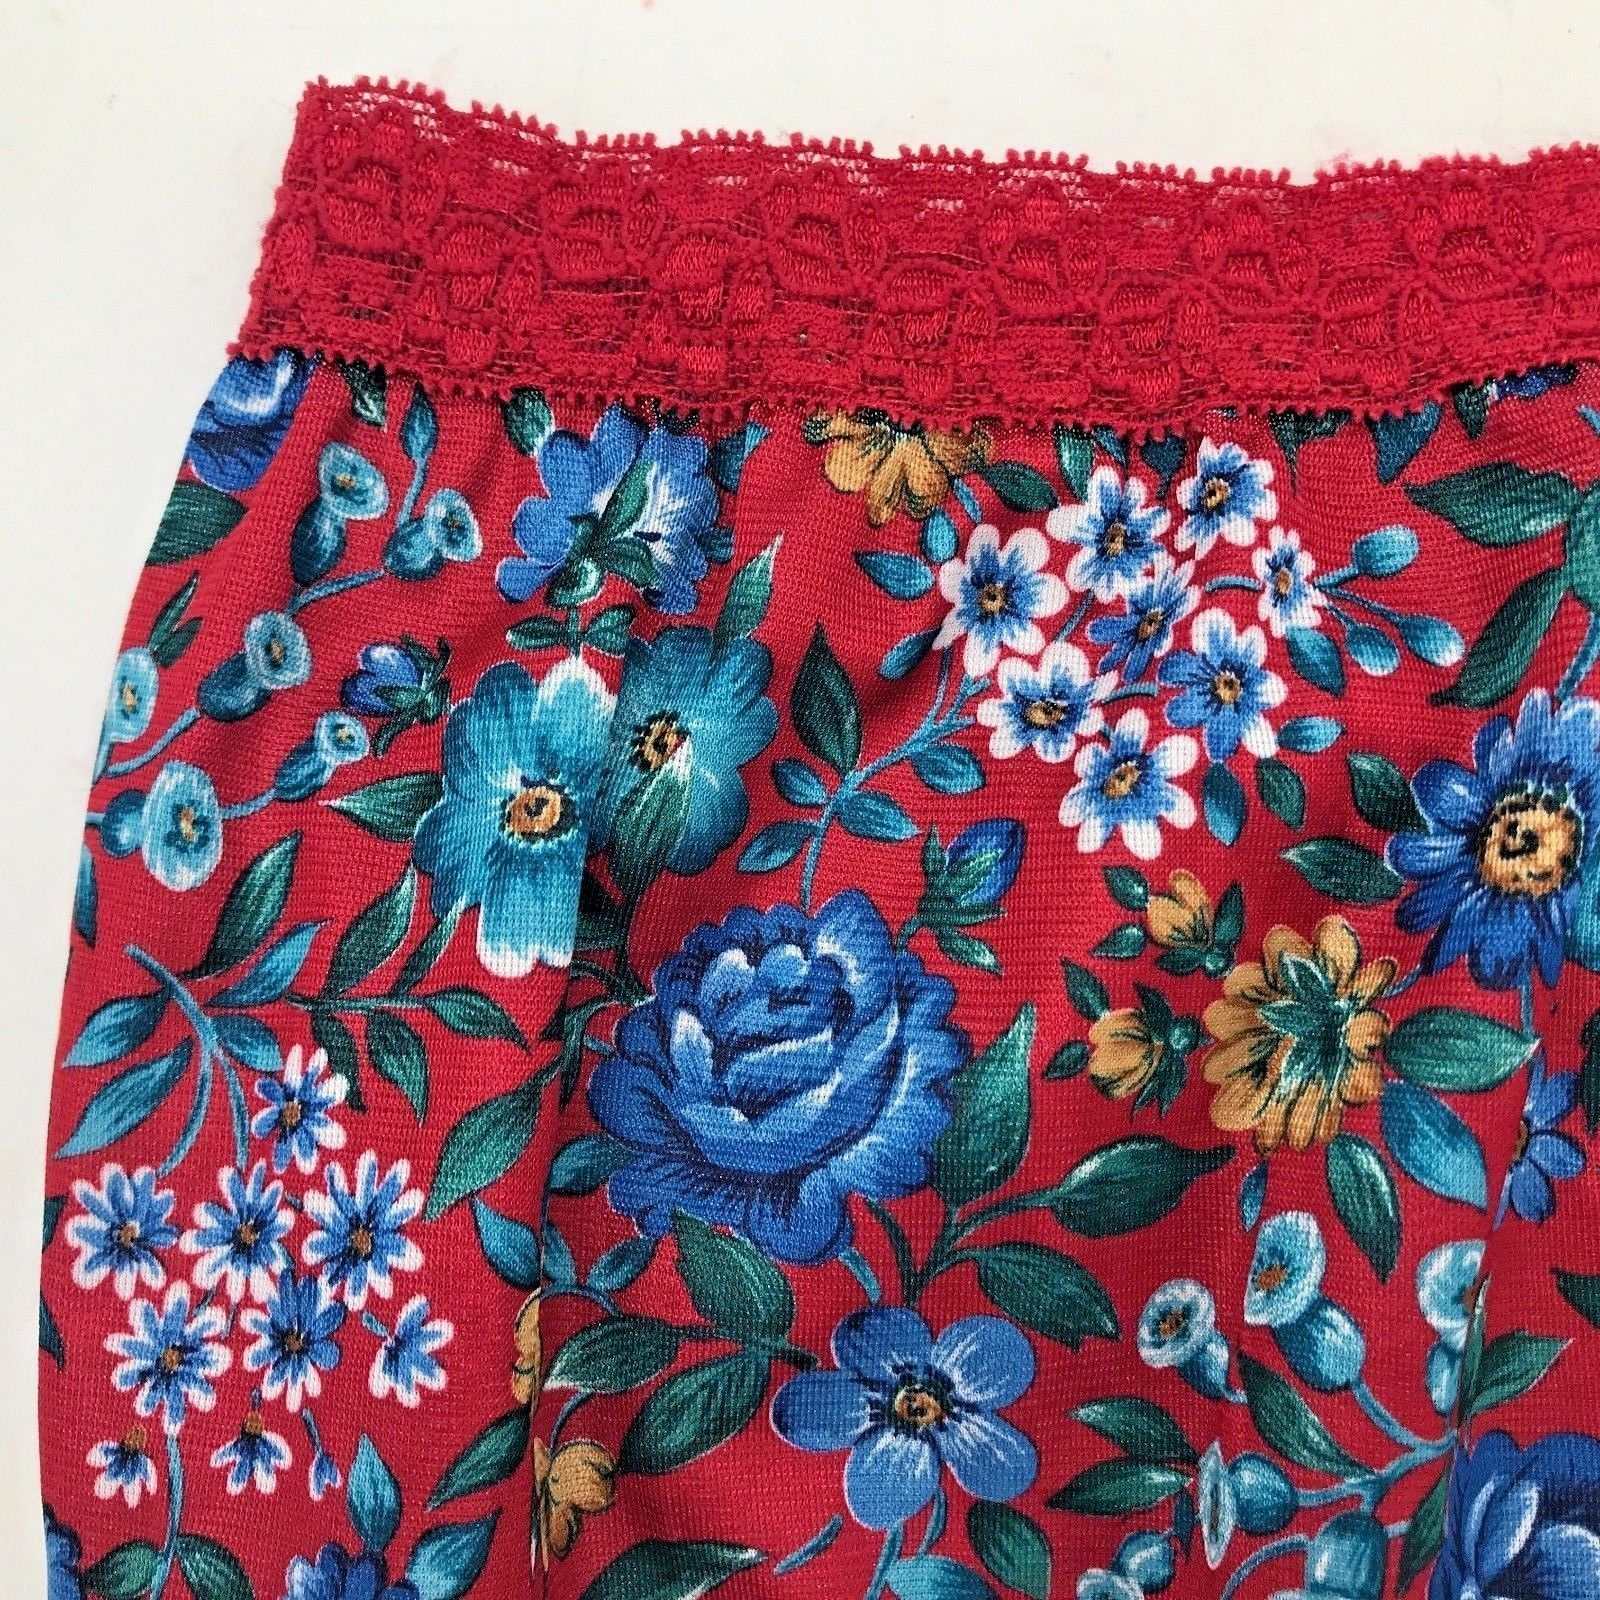 fe9ca6588c0 Vintage Sears The Doesnt Panty Brief size 7 NWT Backseam Red Nylon Blue  Roses AC